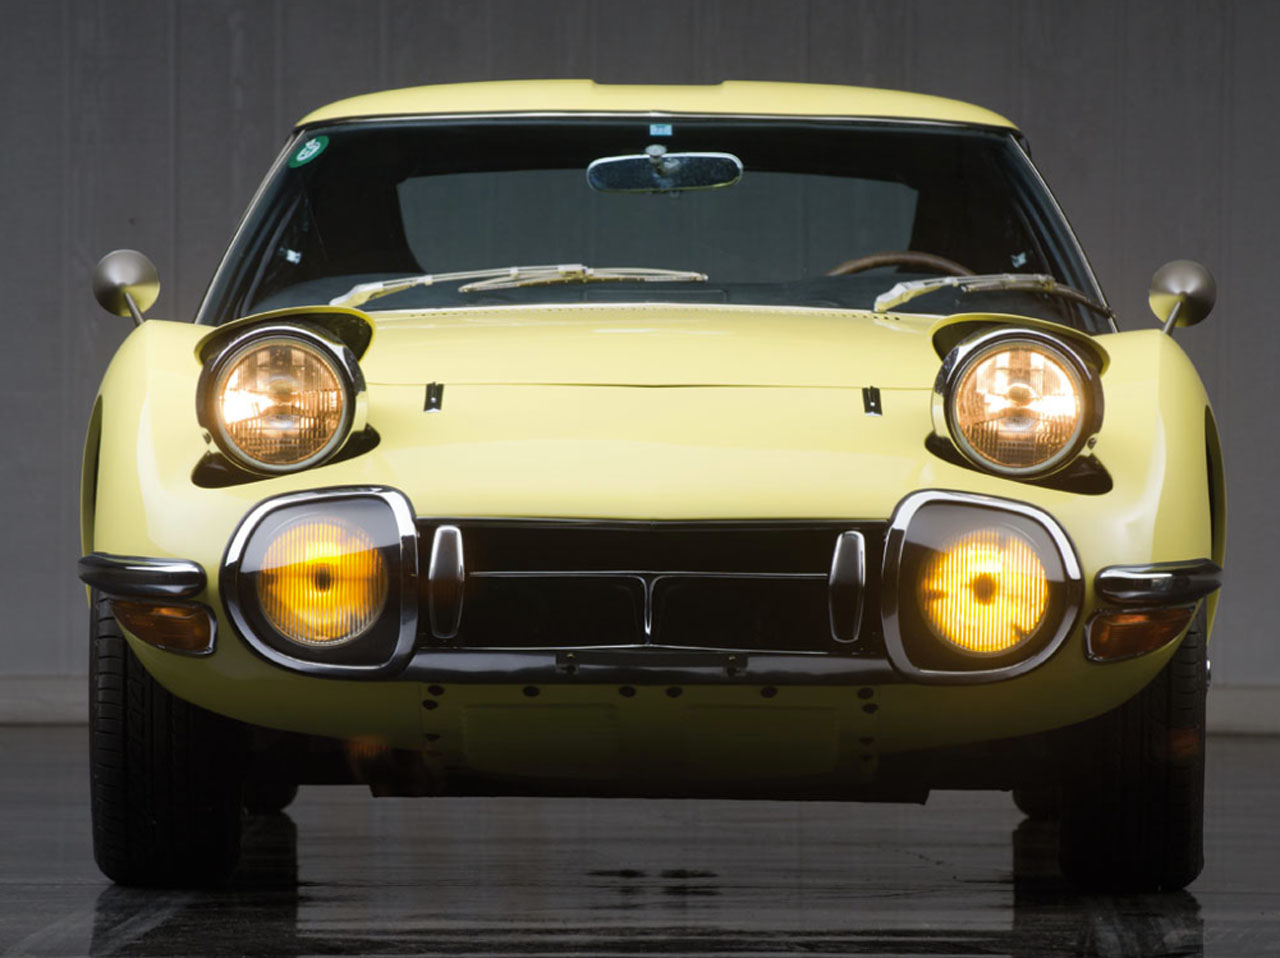 Toyota Certified Pre-Owned >> 1967 Toyota 2000GT most expensive Asian car ever sold at $1.2M | Autoblog